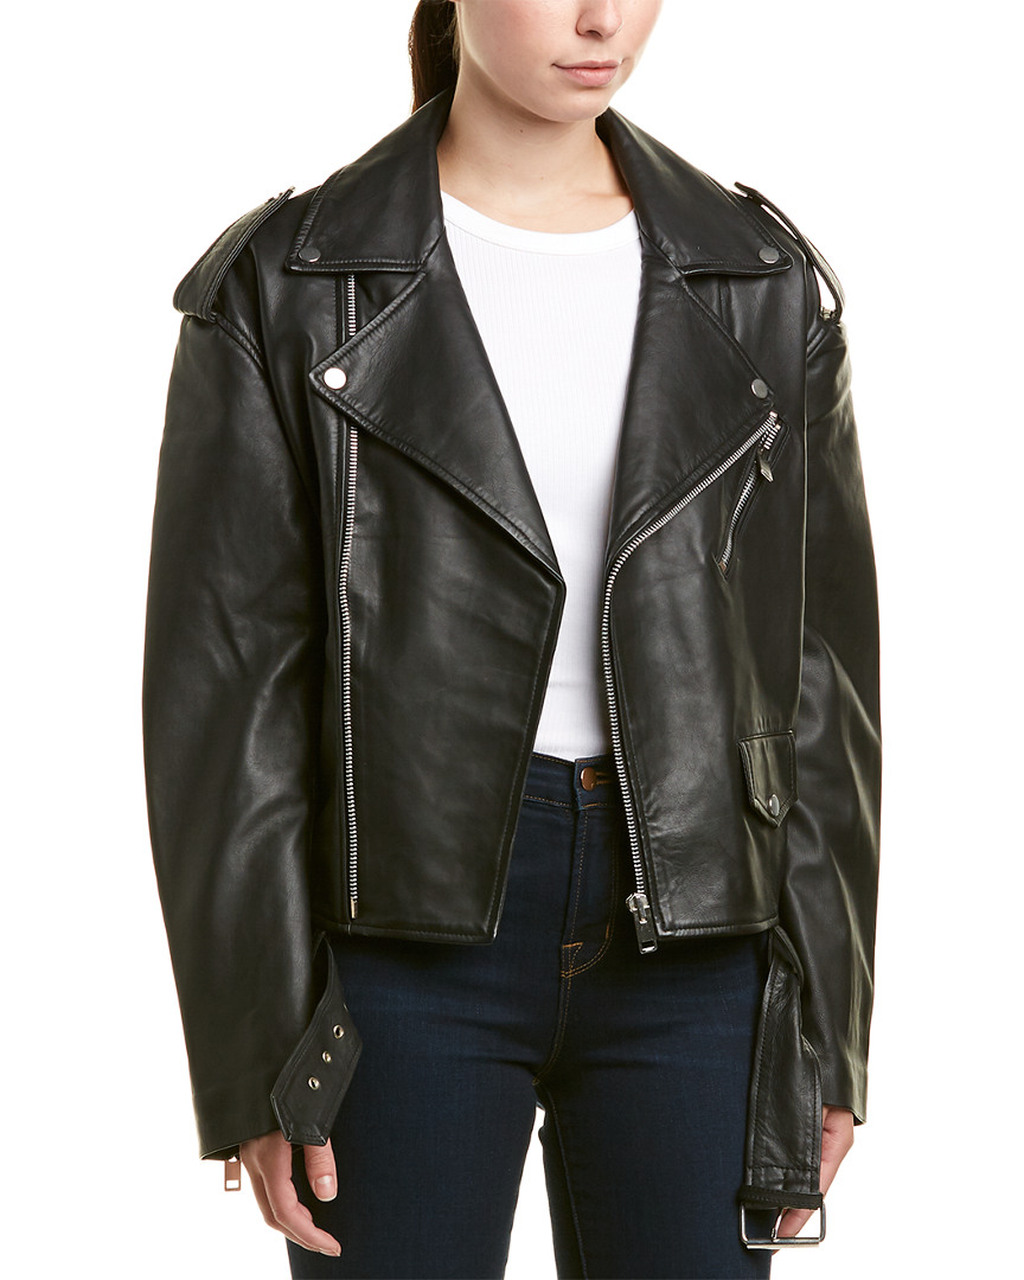 select for clearance men/man amazon Walter Baker Hope Leather Jacket~1411391212